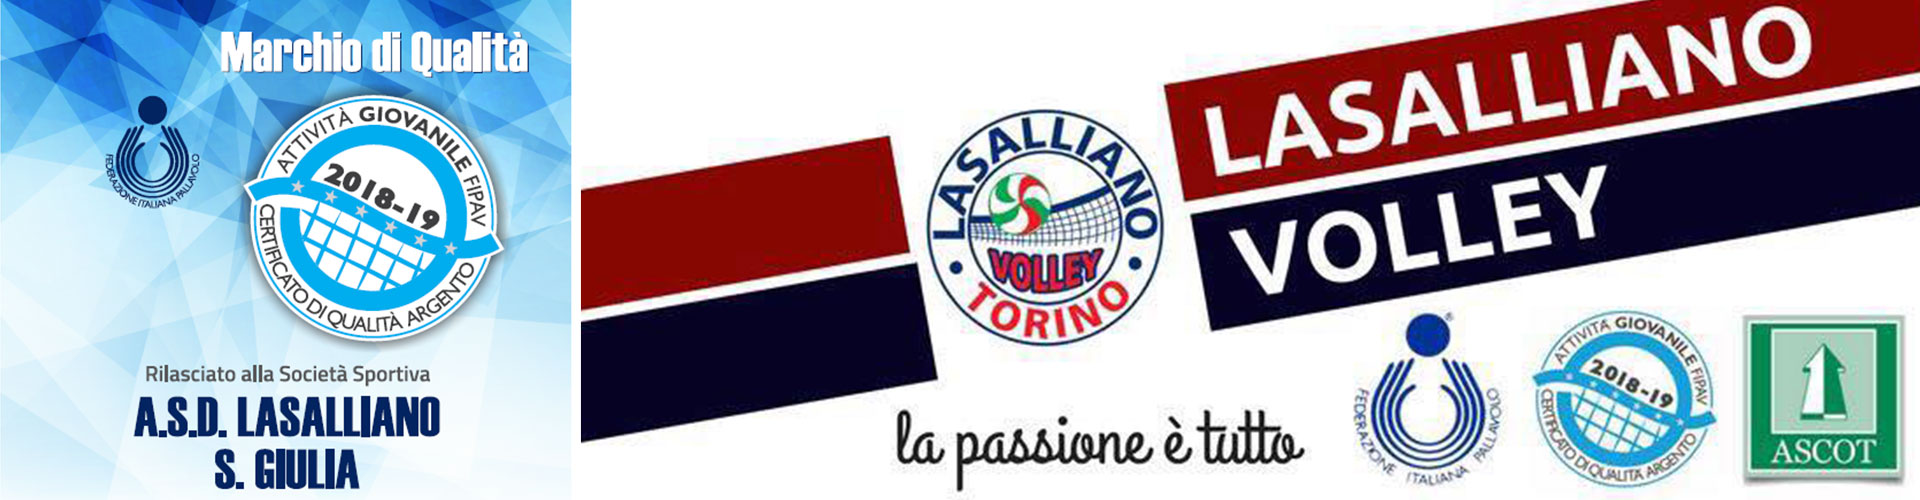 Lasalliano Volley